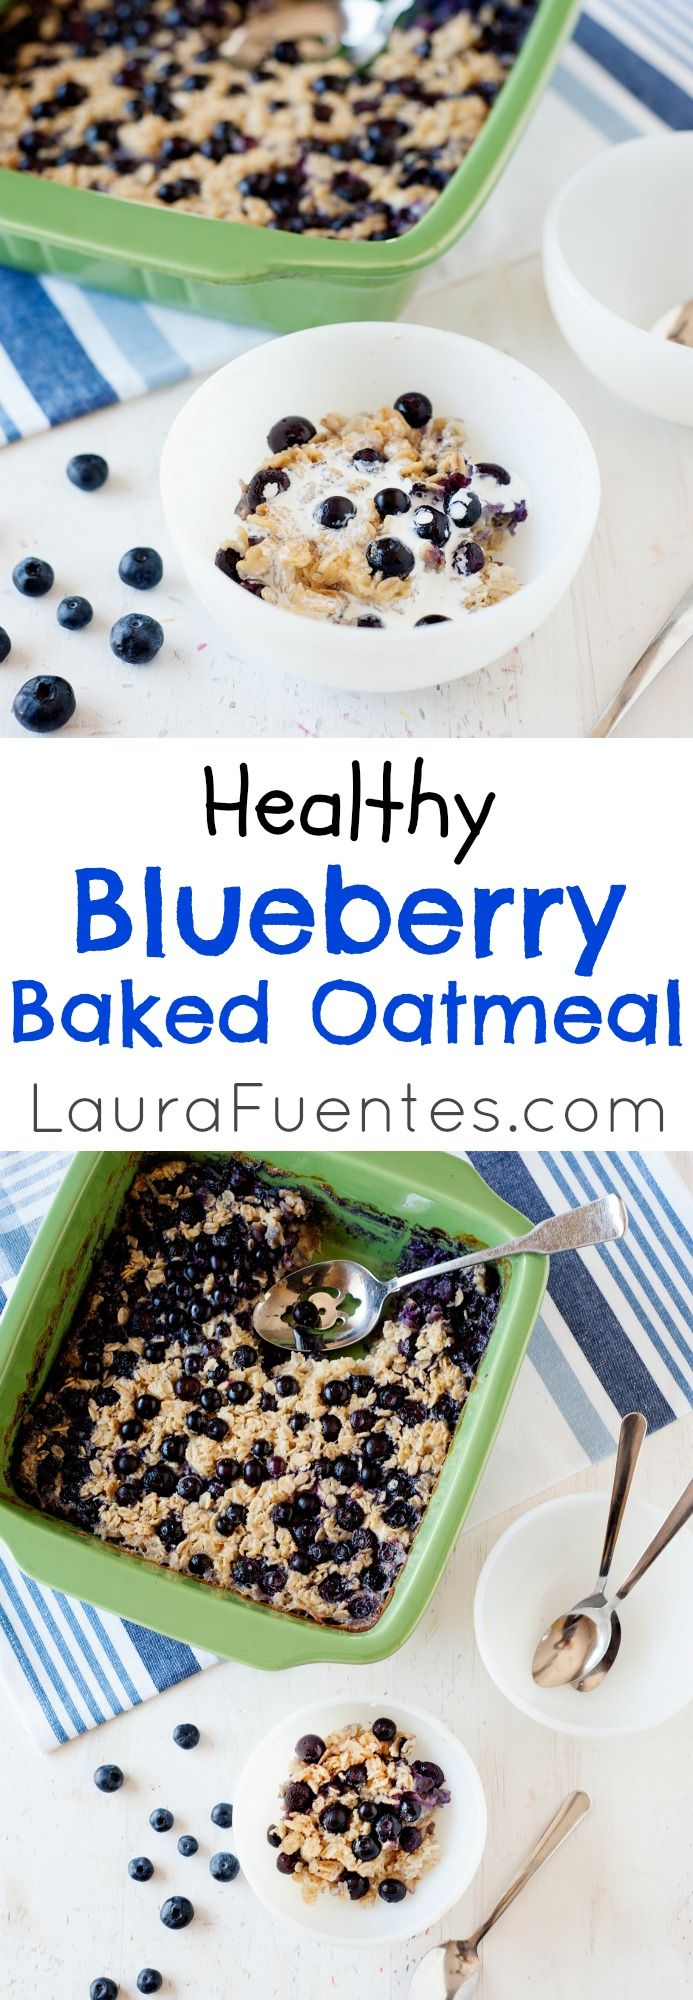 This blueberry baked oatmeal recipe is a hearty and healthy breakfast that can be prepared the night before or while getting the kids ready for school. #breakfast #recipes #brunch #easy #recipe